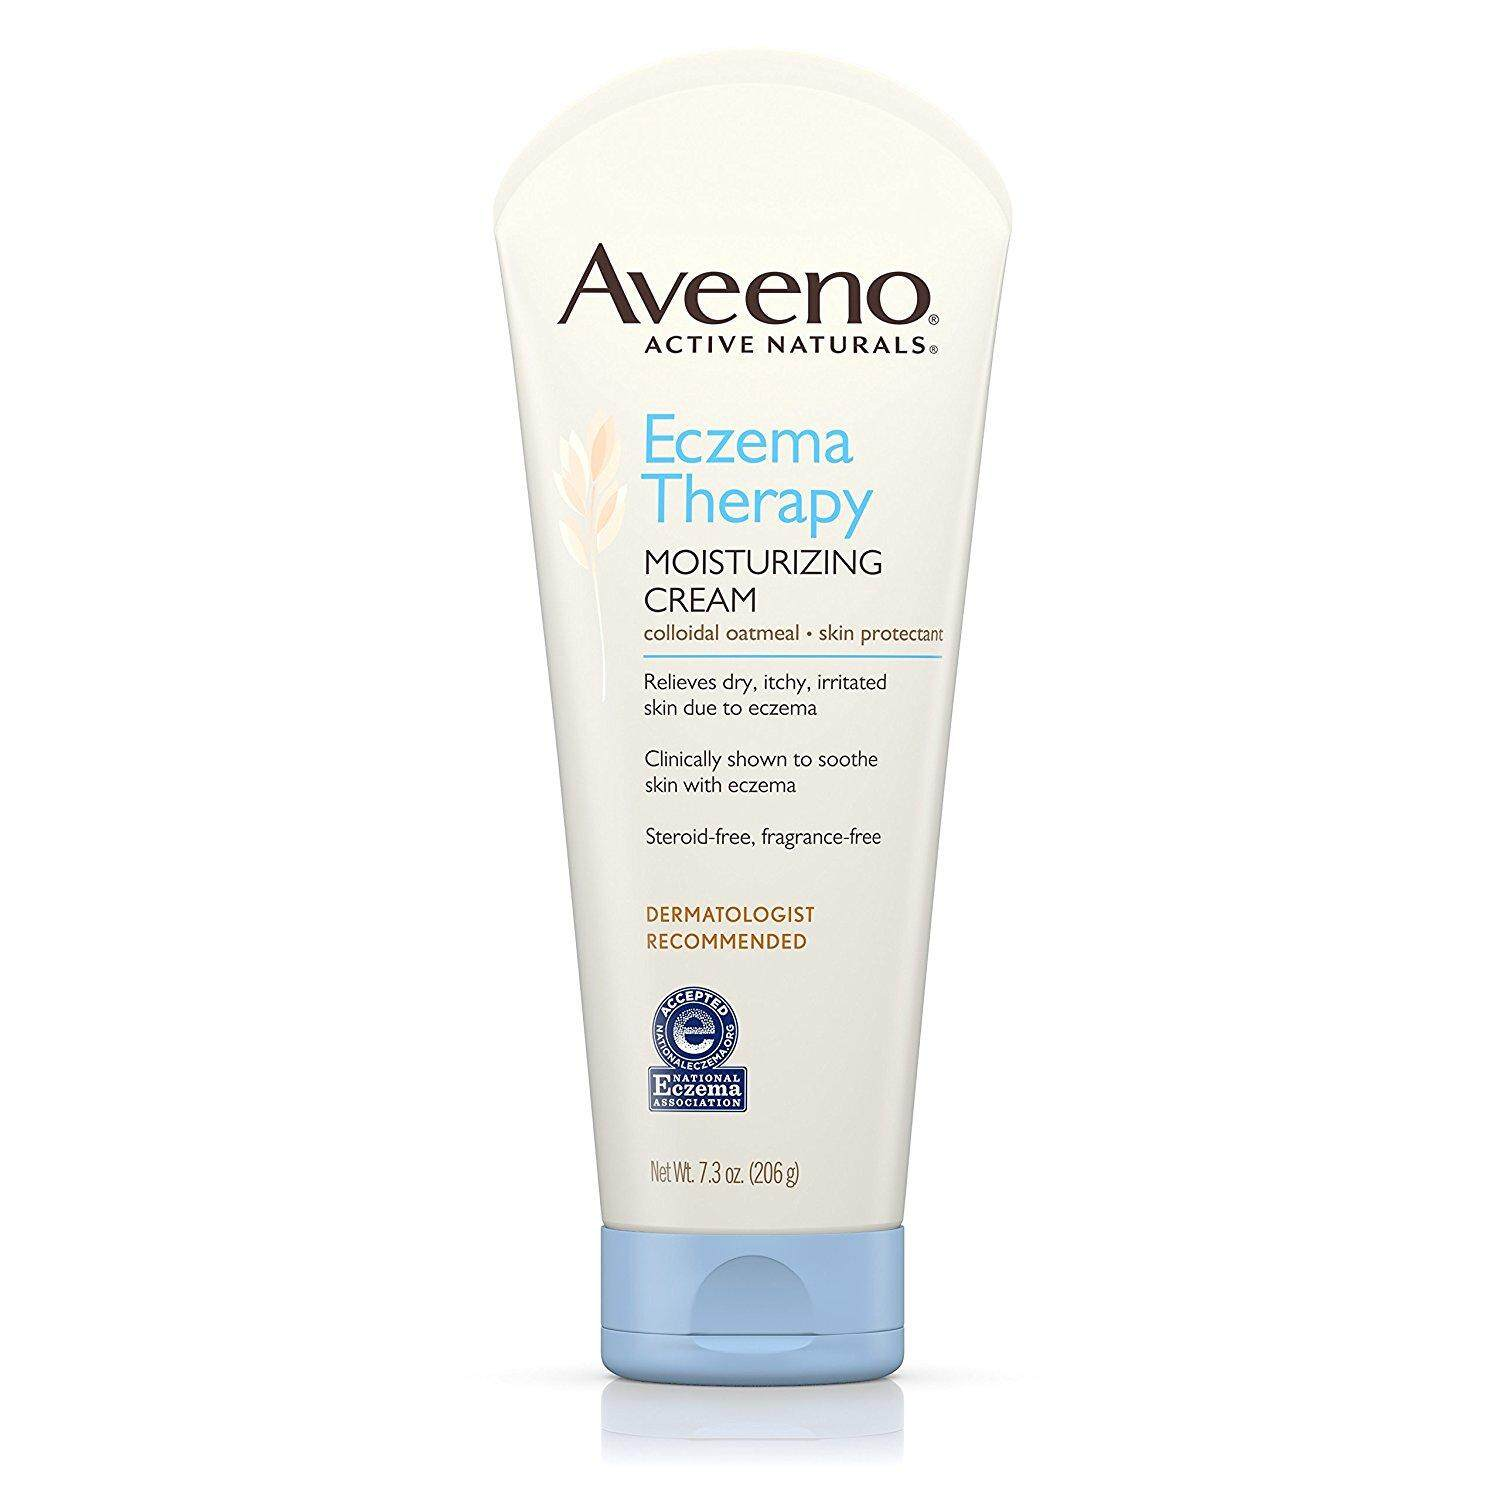 Aveeno Eczema Therapy Moisturizing Cream For Sensitive Skin By Iimono Living.